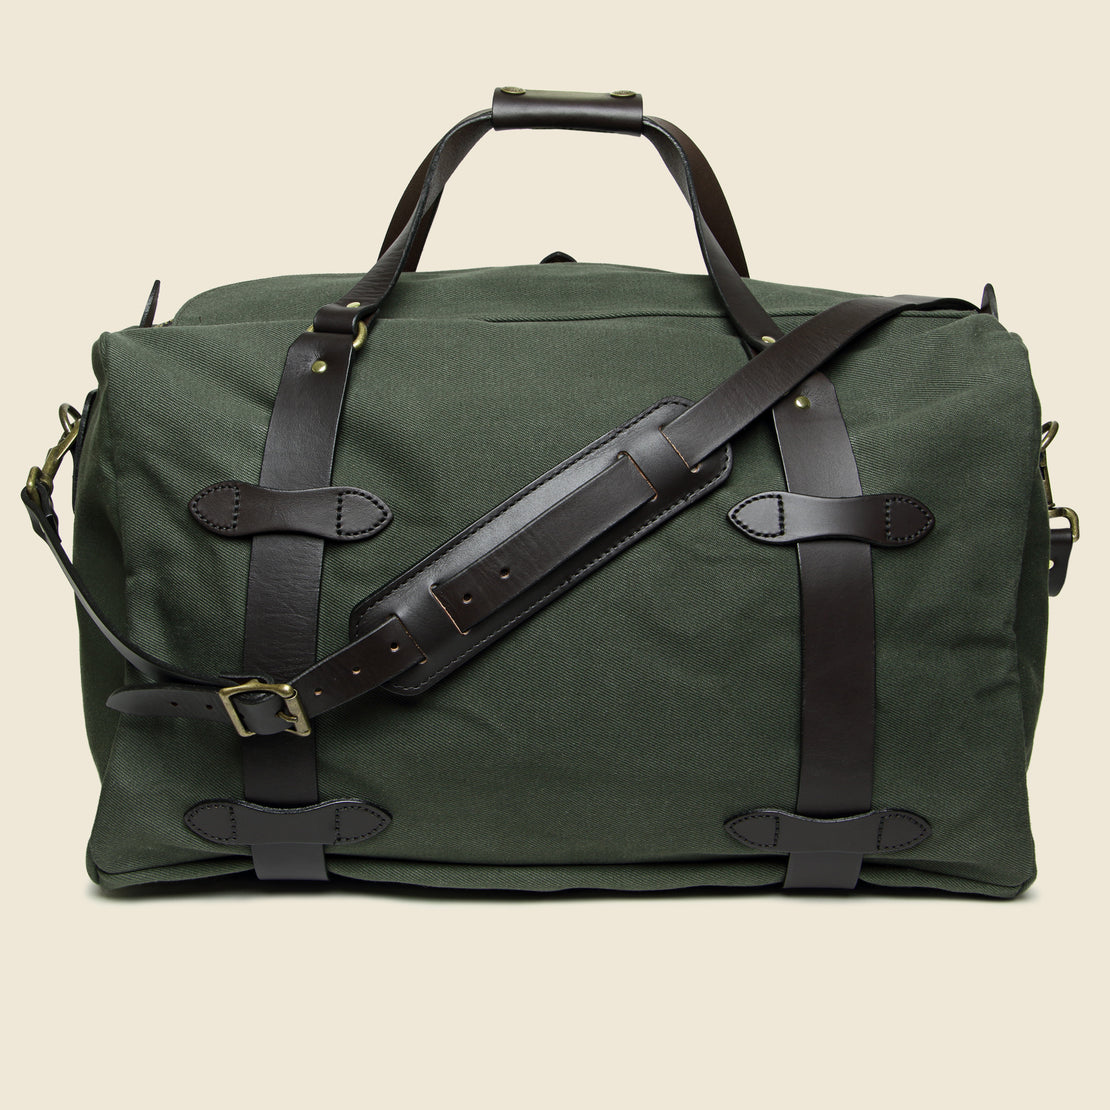 Medium Carry-On Duffle Bag - Otter Green